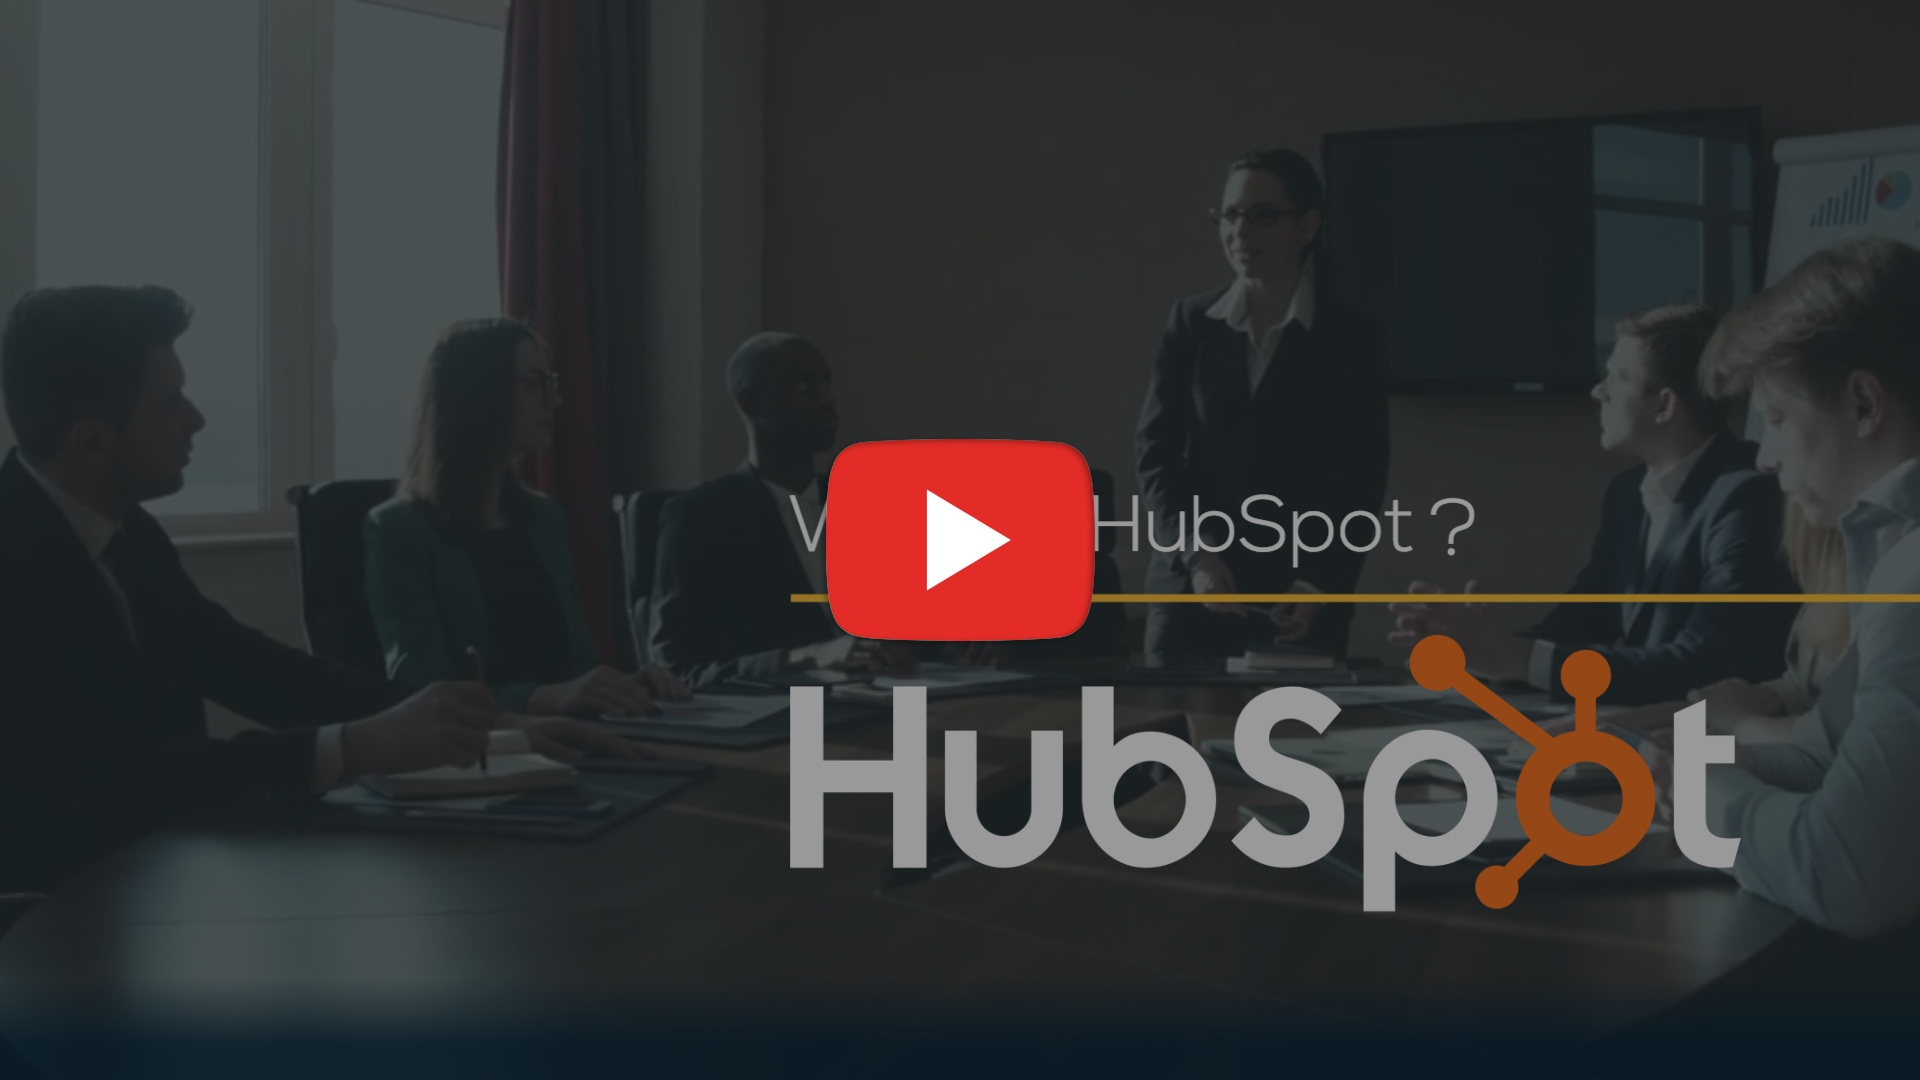 What-is-hubspot-youtube